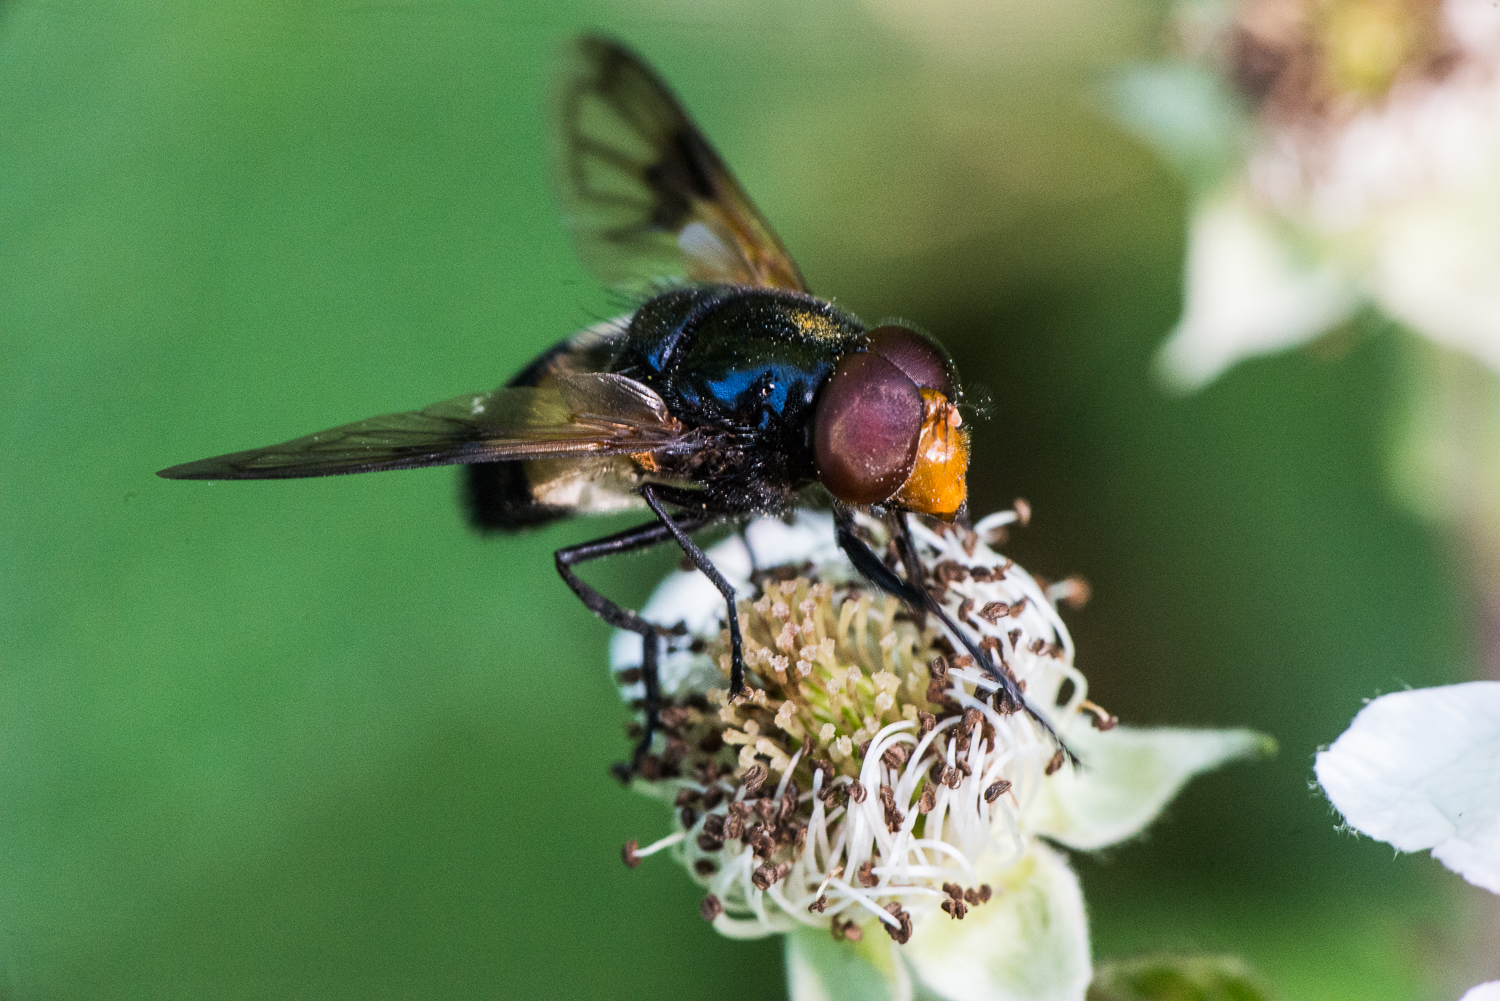 A rather unpleasant looking fly of some kind